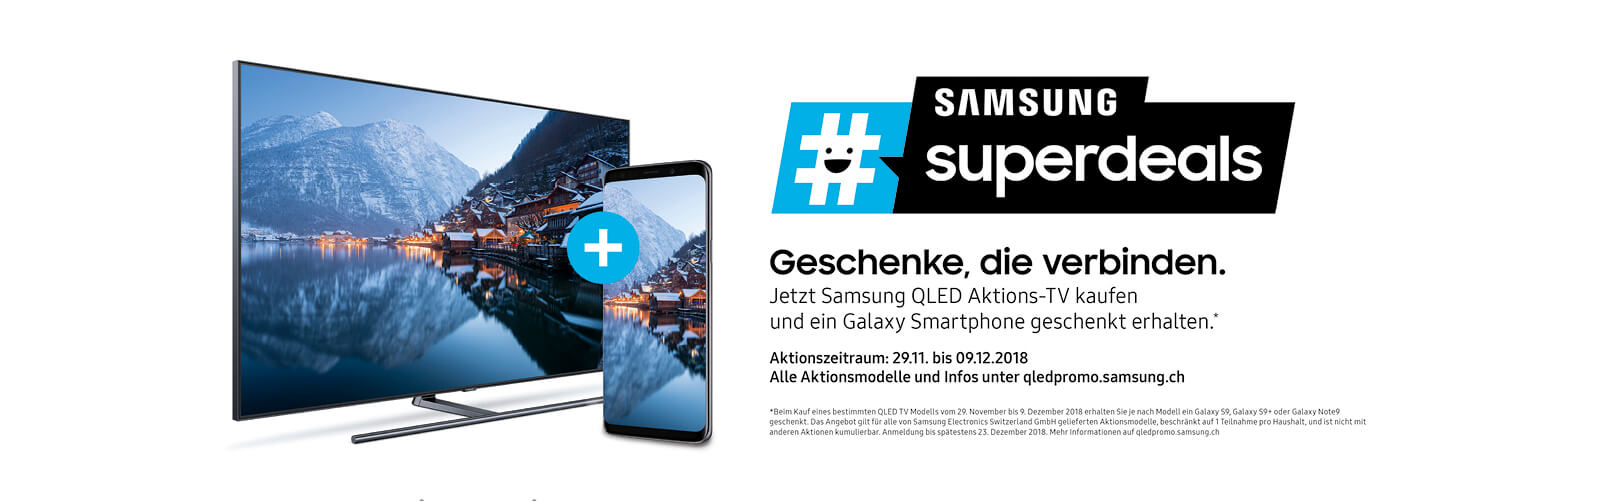 Samsung Super Deal